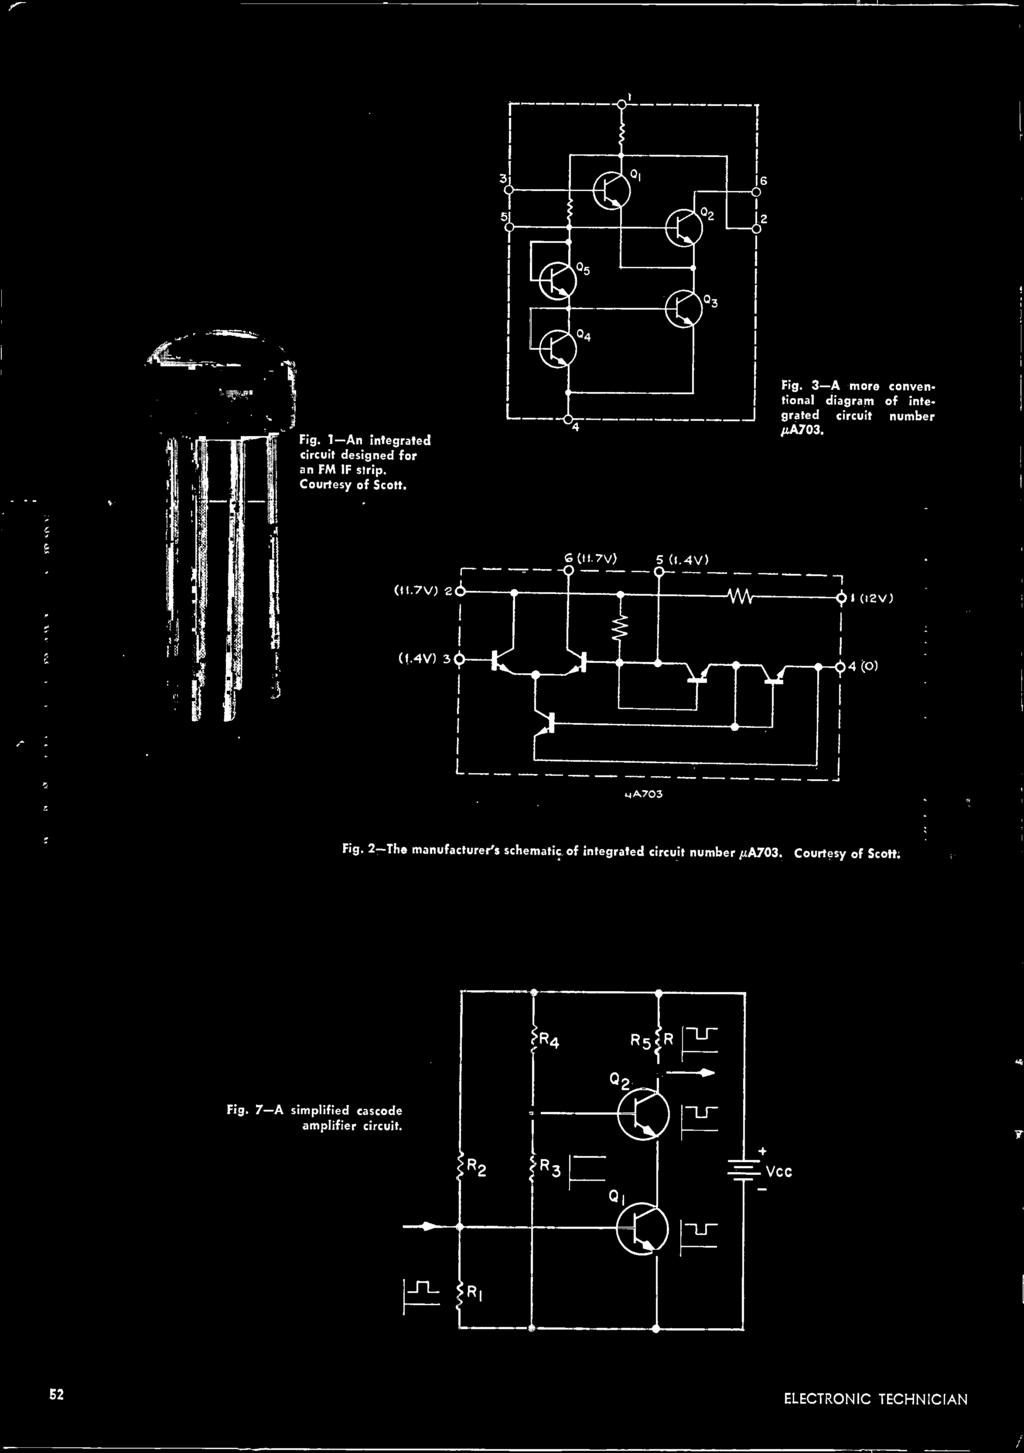 Servicing A Modern Color Tv Protecting Electronic Circuits The 1953 Plymouth Cranbrook Wiring Diagram 2 Manufacturers Schematic Of Integrated Circuit Number A703